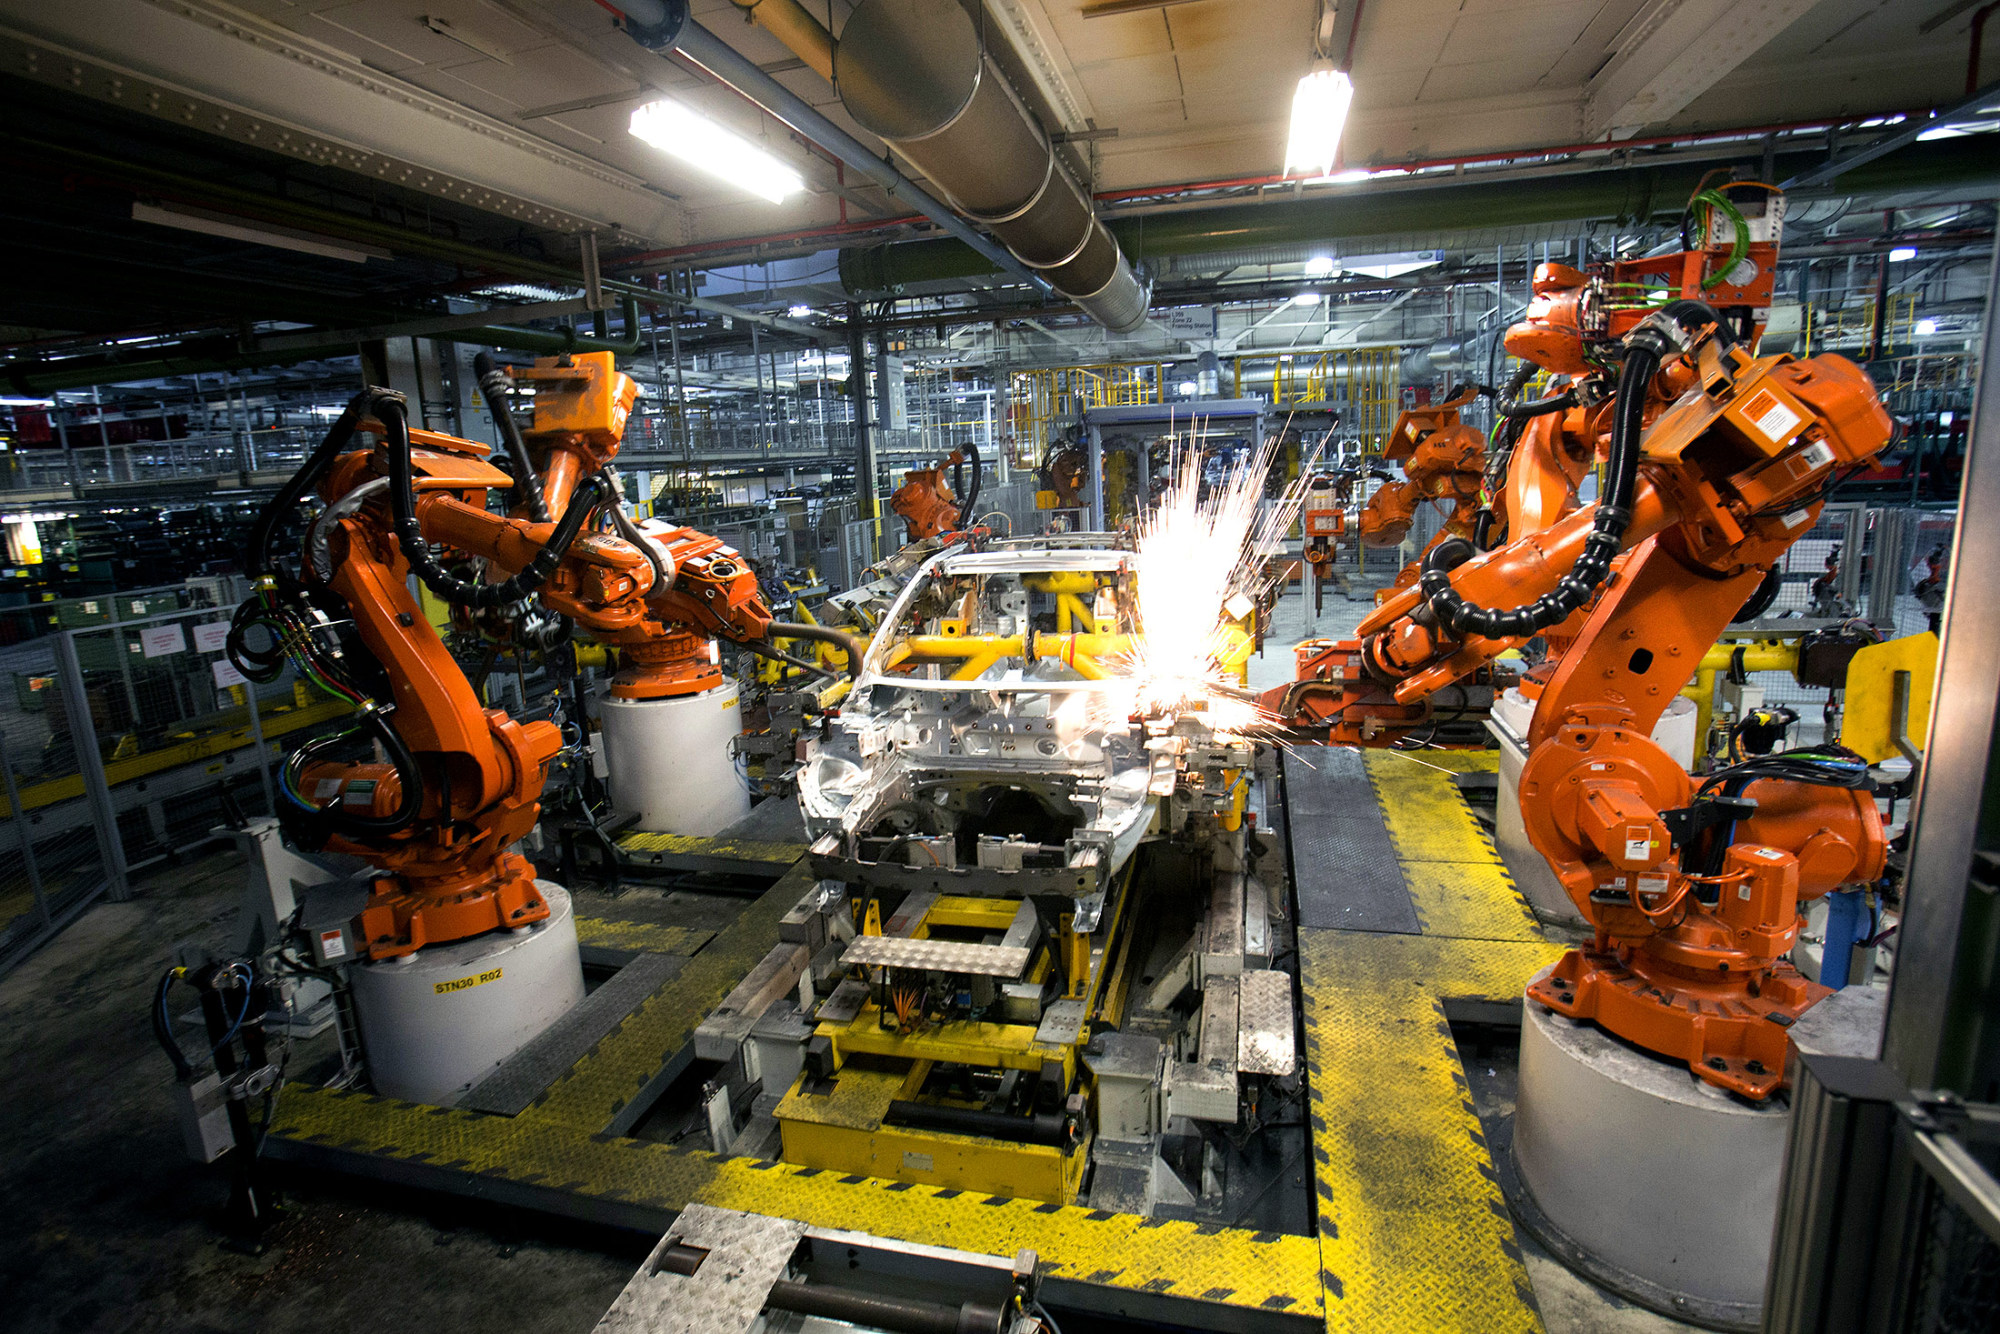 Race to make robots for china spurs abb to double capacity bloomberg malvernweather Choice Image